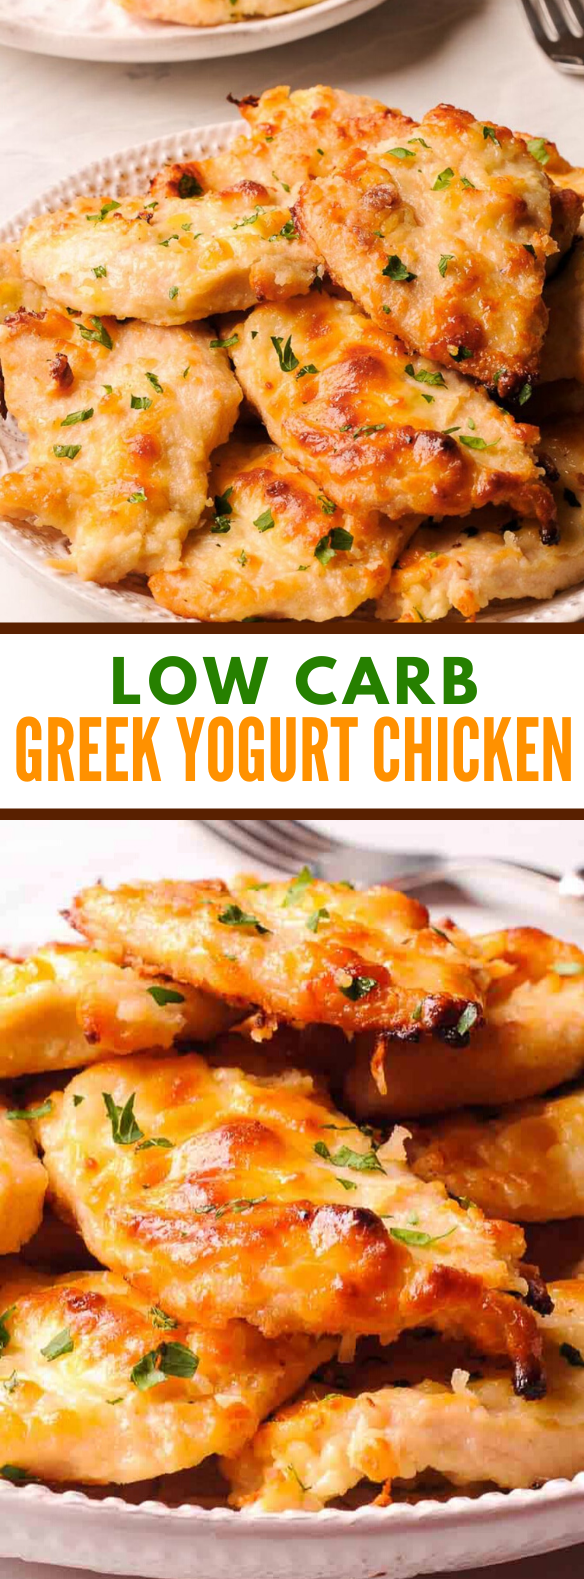 LOW CARB GREEK YOGURT CHICKEN RECIPE #healthydinner #diet